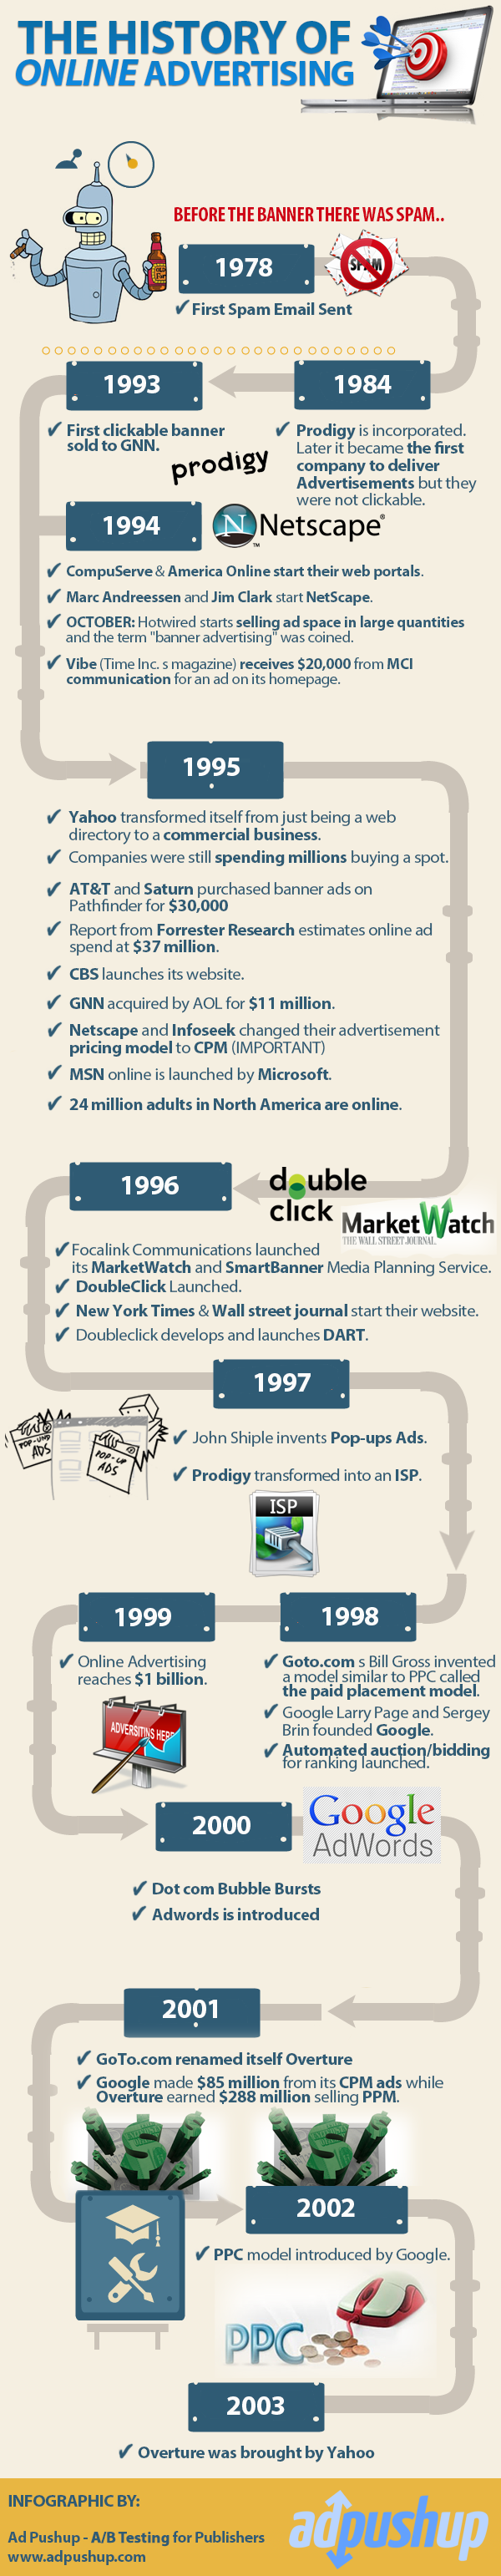 Evolution of Online Advertising Through the Years